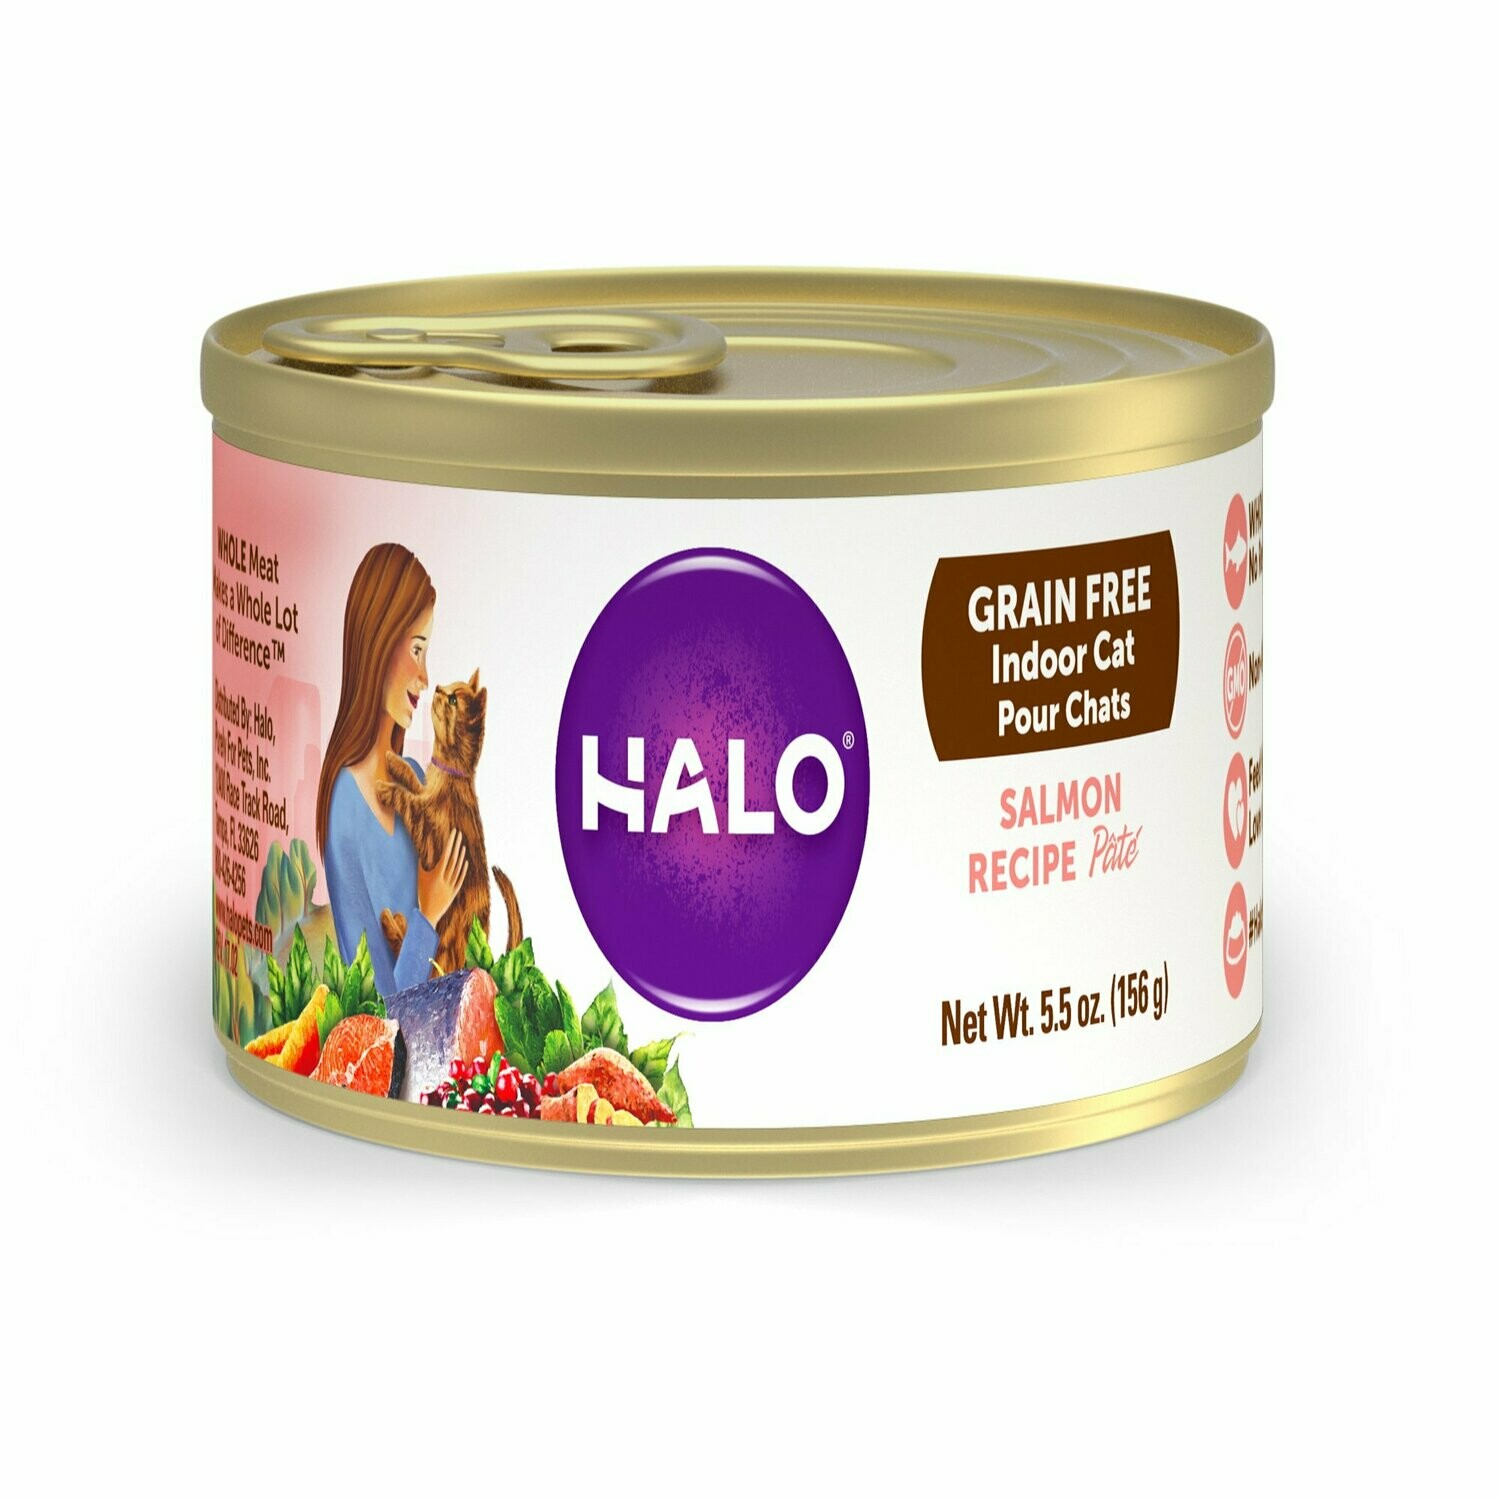 Halo grain free indoor cats salmon recipe pate 5.5 ounce 12 count (12/19)